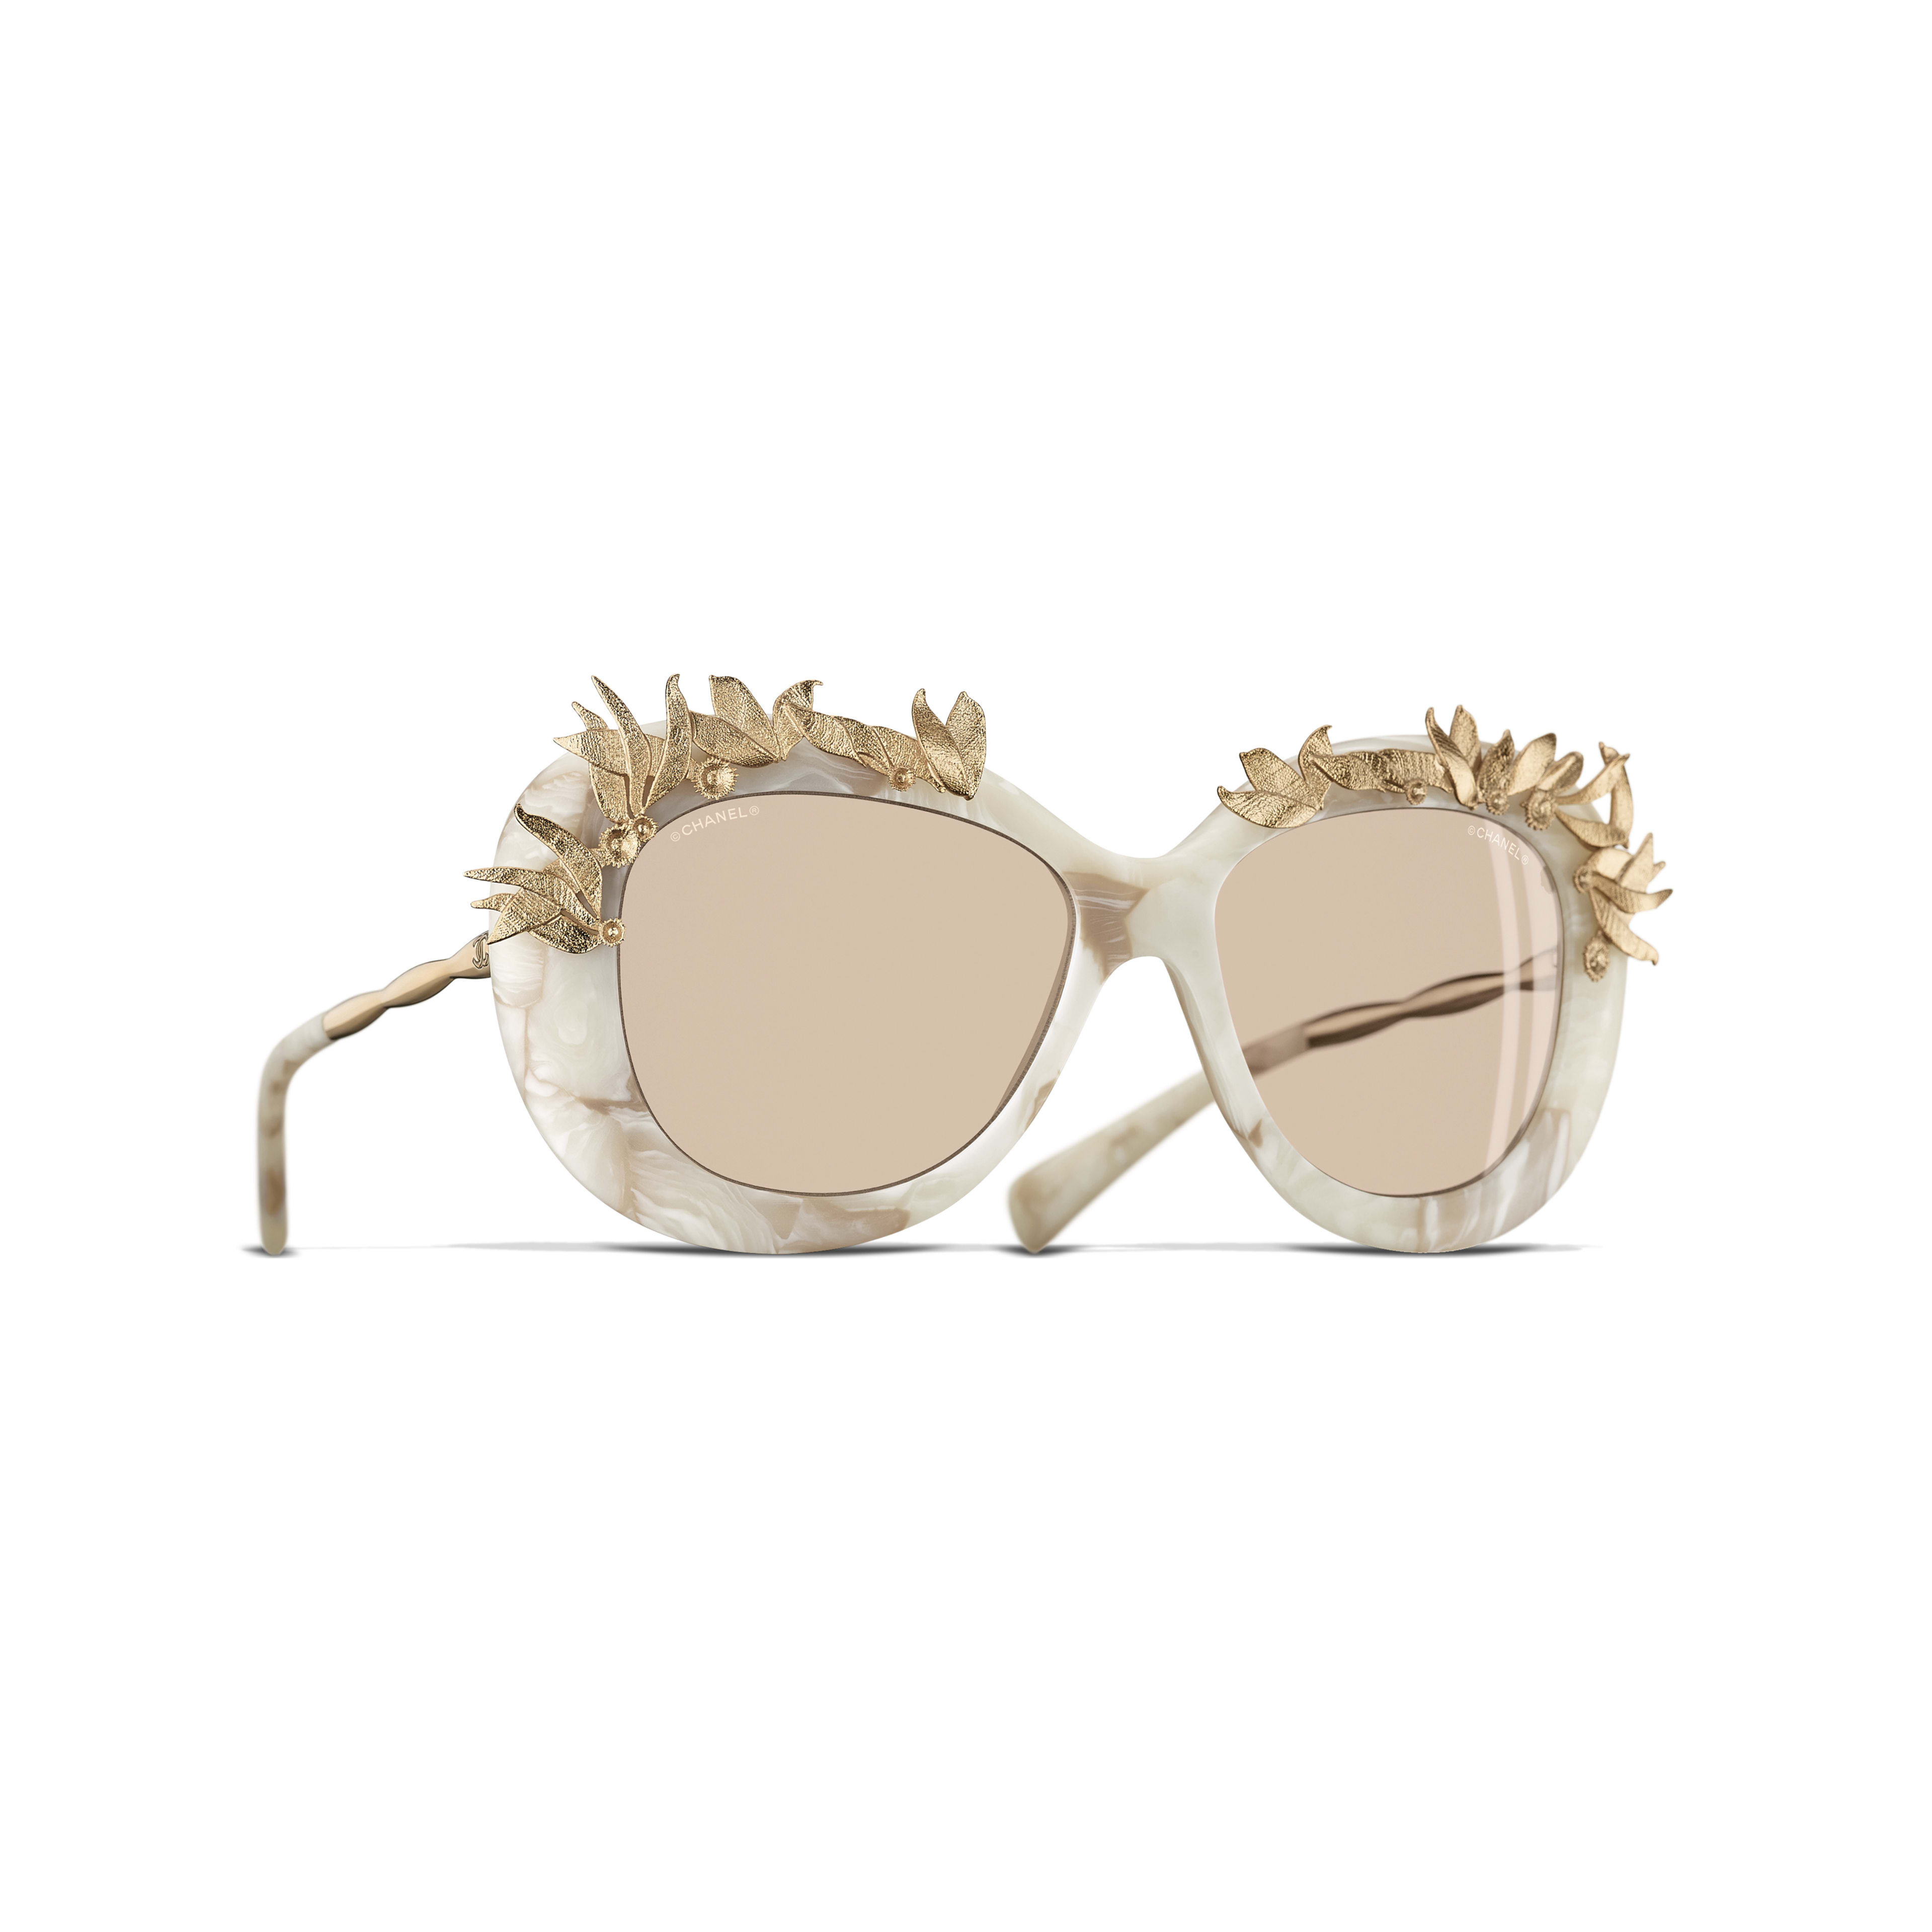 Oval Sunglasses Acetate & Metal White & Gold -                                               view 1 - see full sized version